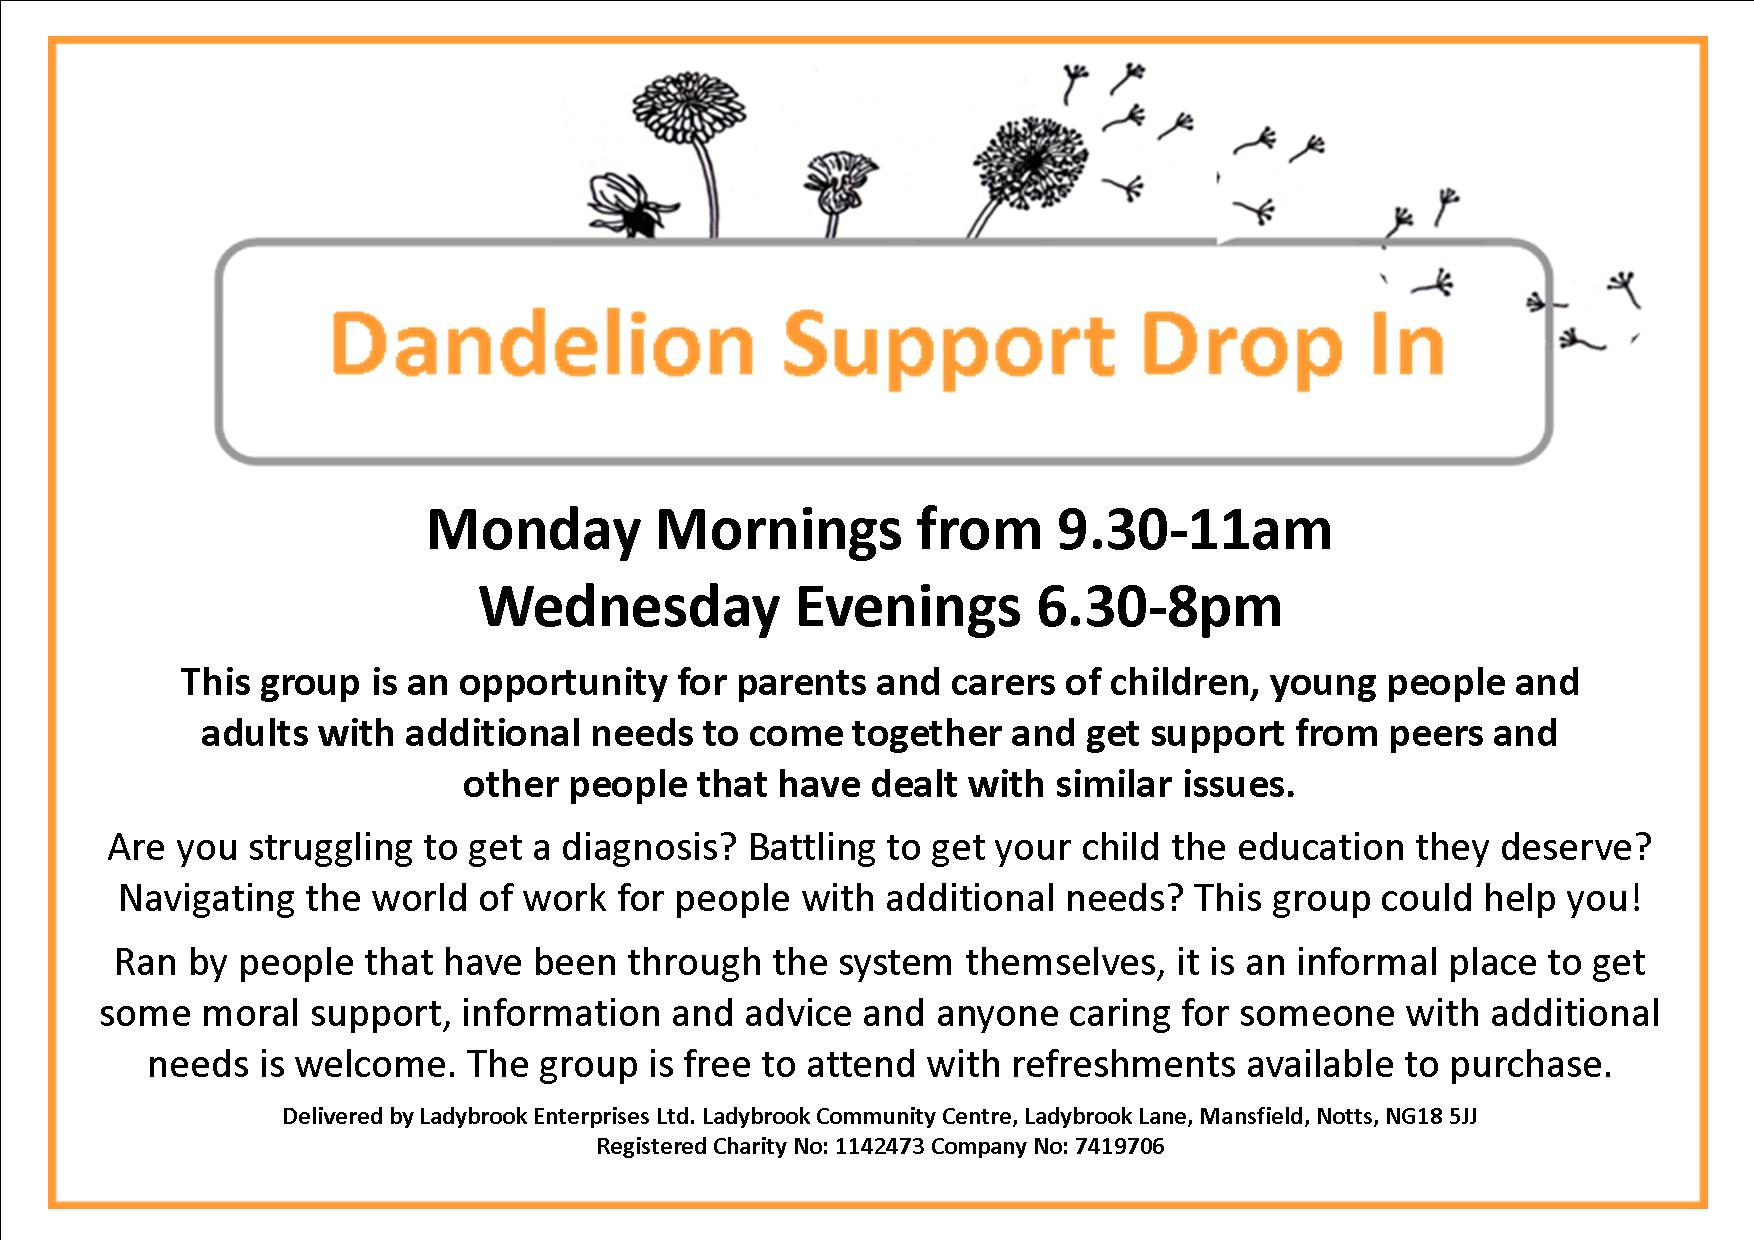 dandelion support